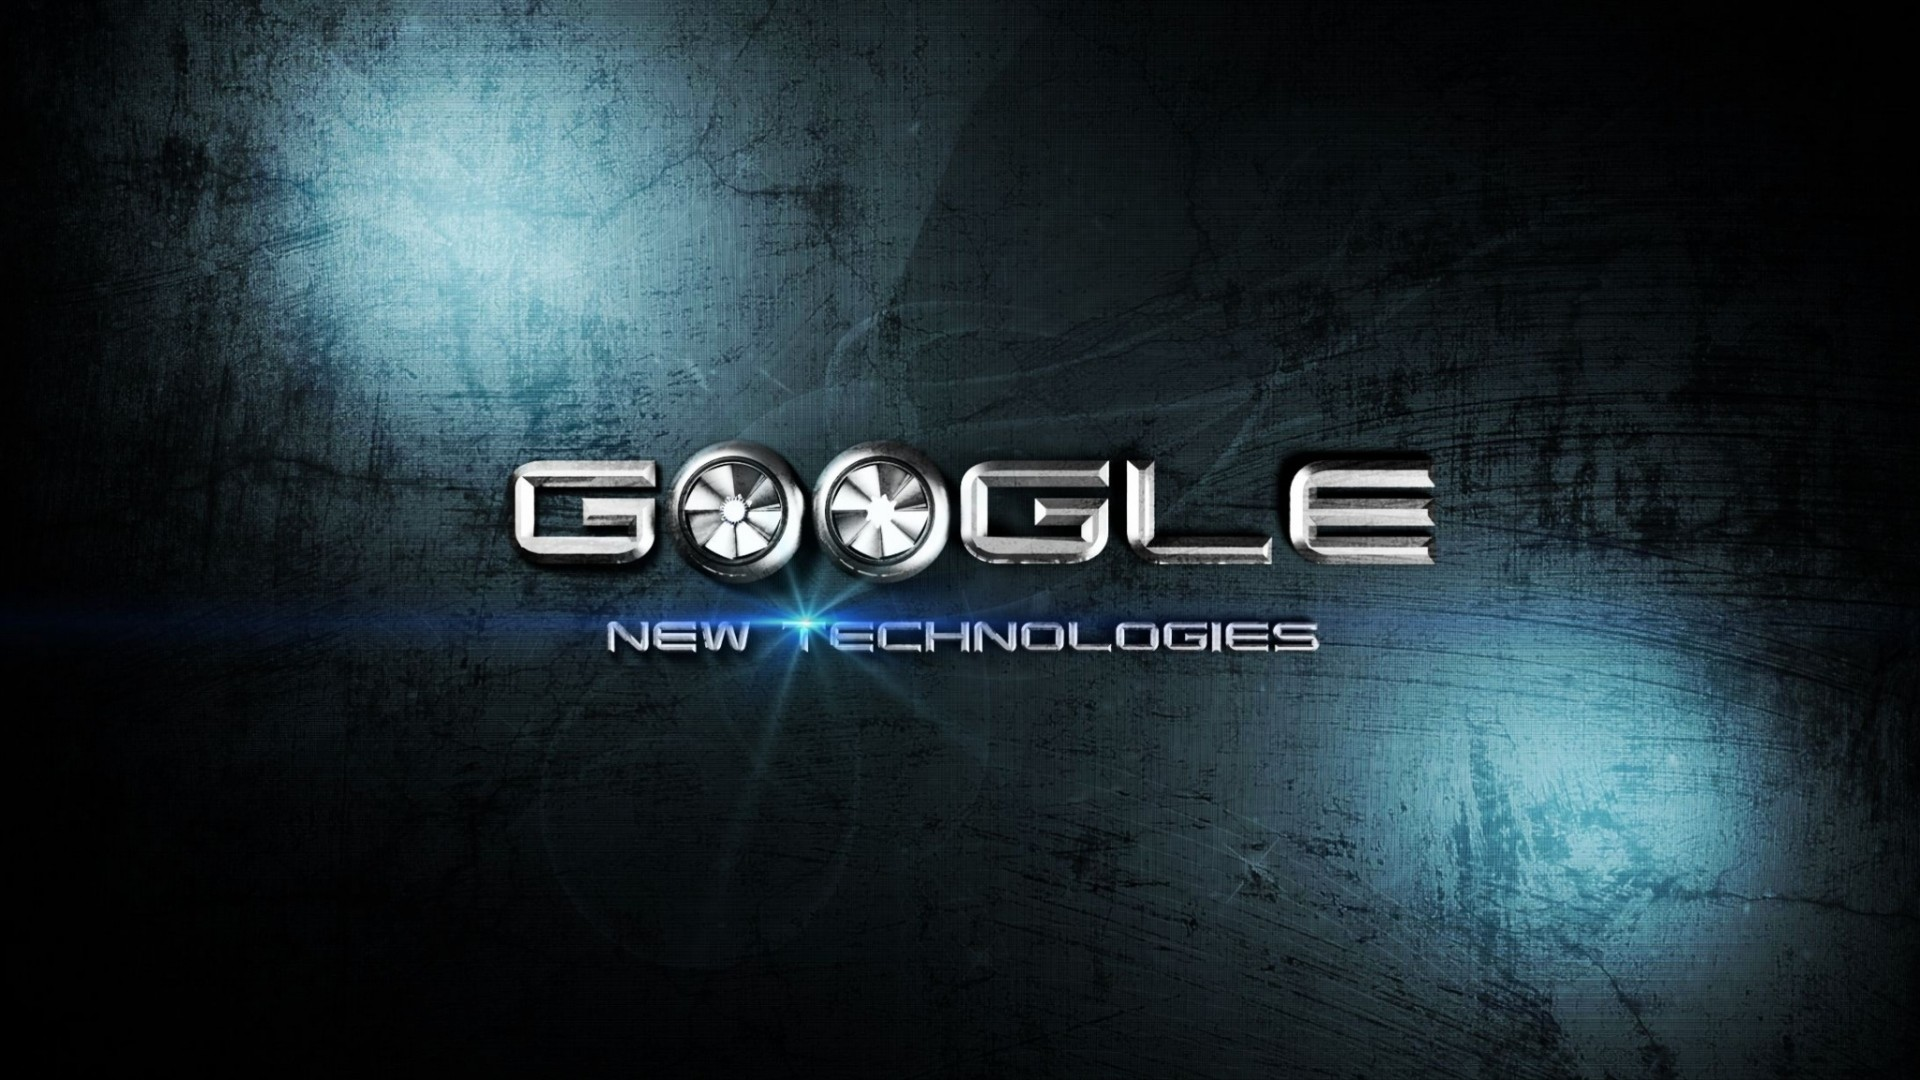 1920x1080 Preview wallpaper krass, hi-tech, google, new technologies